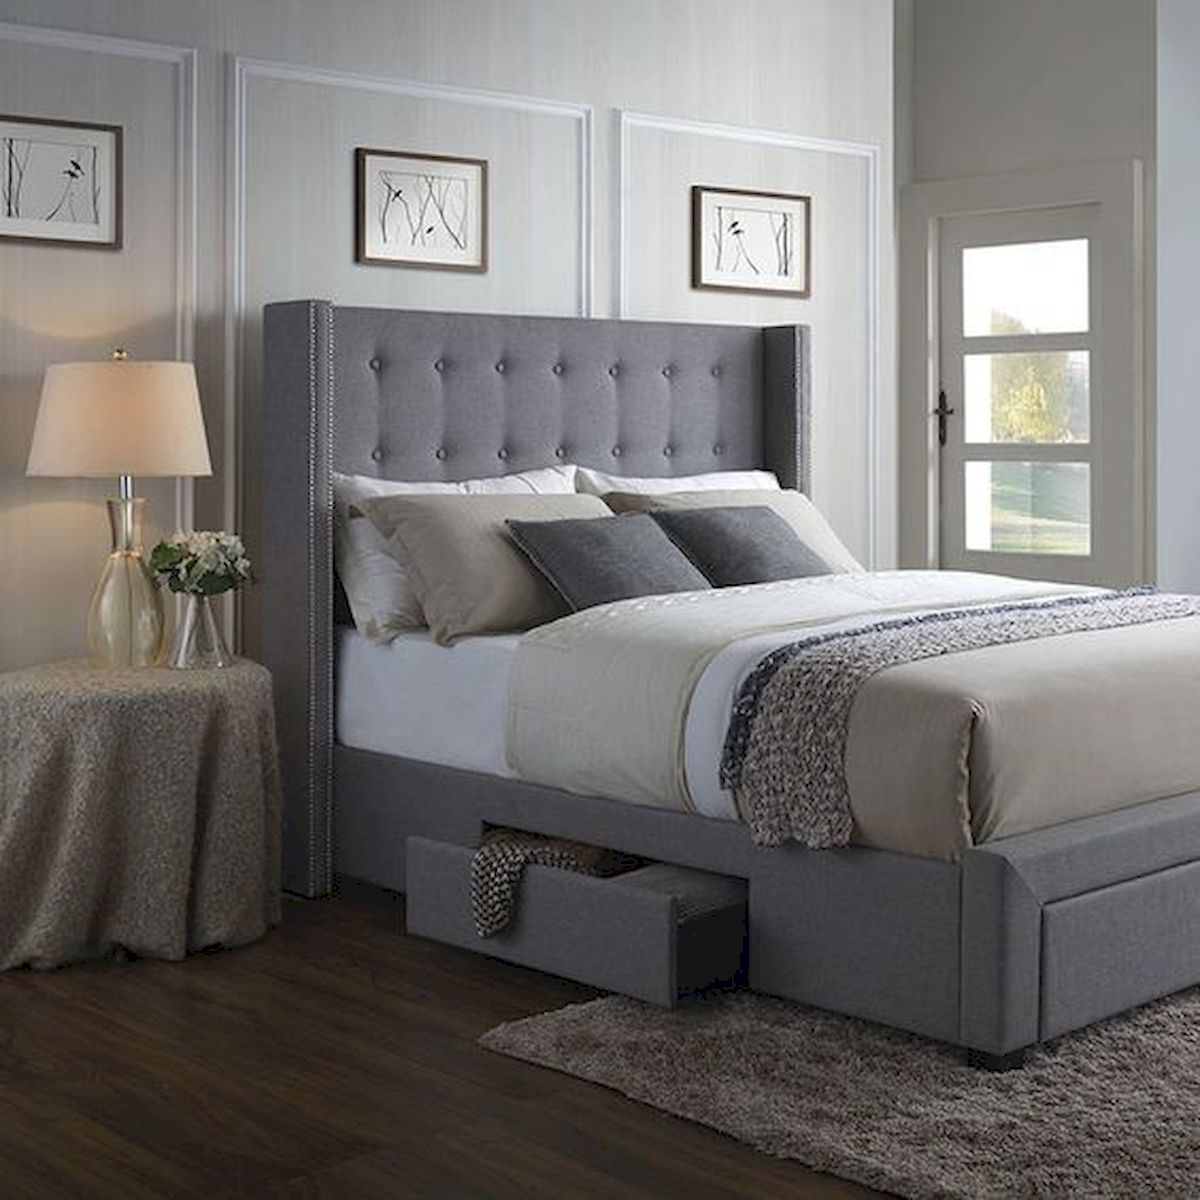 60 Brilliant Space Saving Ideas For Small Bedroom (50)